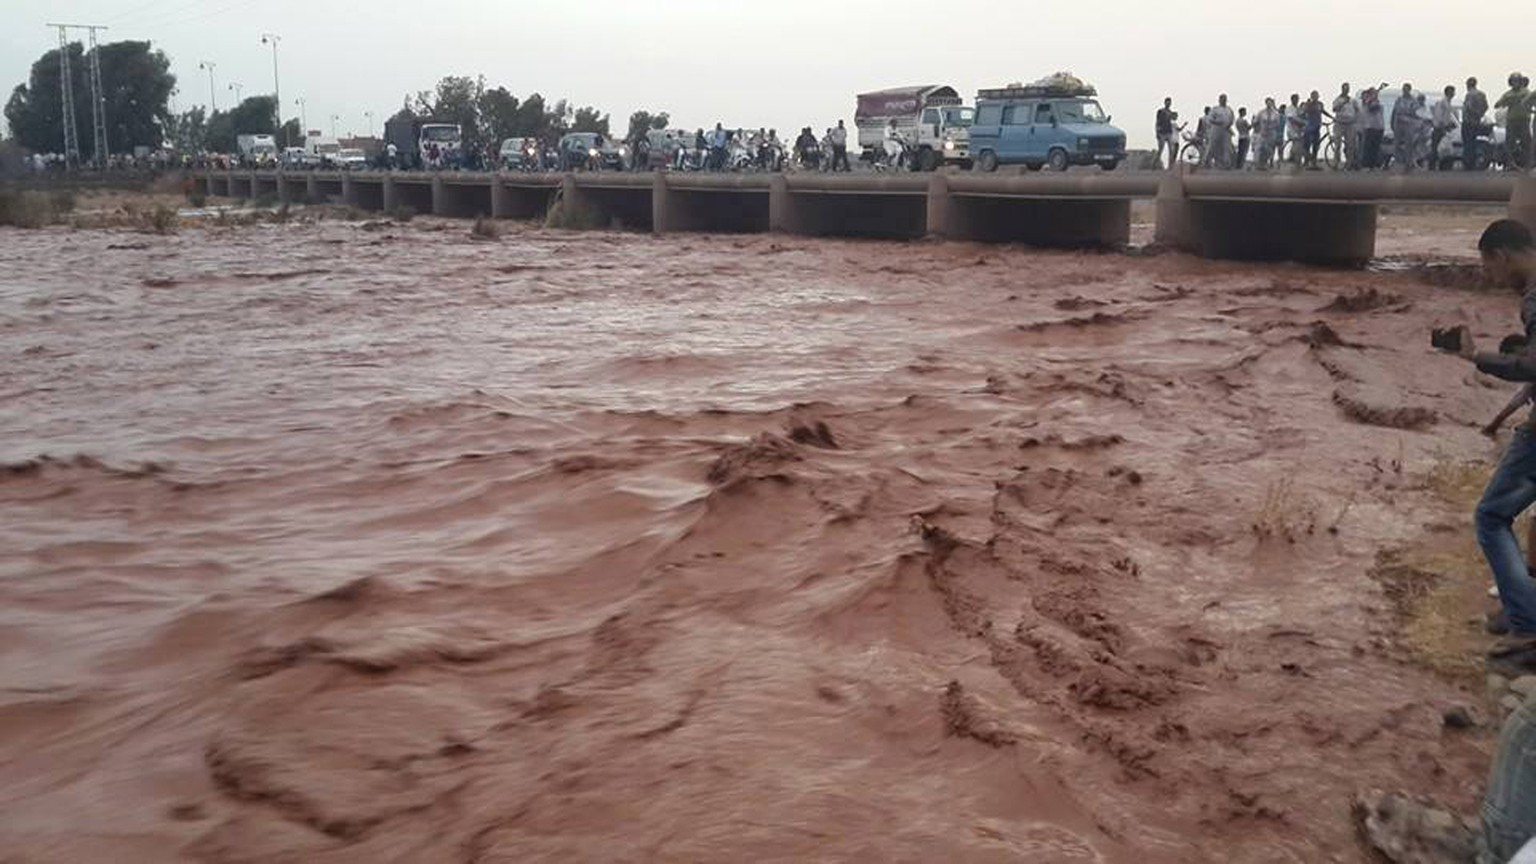 This image taken with a mobile phone shows residents of Guelmim, south western Morocco, crossing a bridge over floodwaters, Monday, Nov. 24, 2014. Morocco's government reports that heavy flooding in the south has killed at least 17 people with another 18 missing after heavy rains over the weekend. In the southern city of Guelmim alone, 13 people were killed by a flash flood that roared through a dry river bed, reported the Interior Ministry in a statement carried by the national news agency late Sunday. (AP Photo)